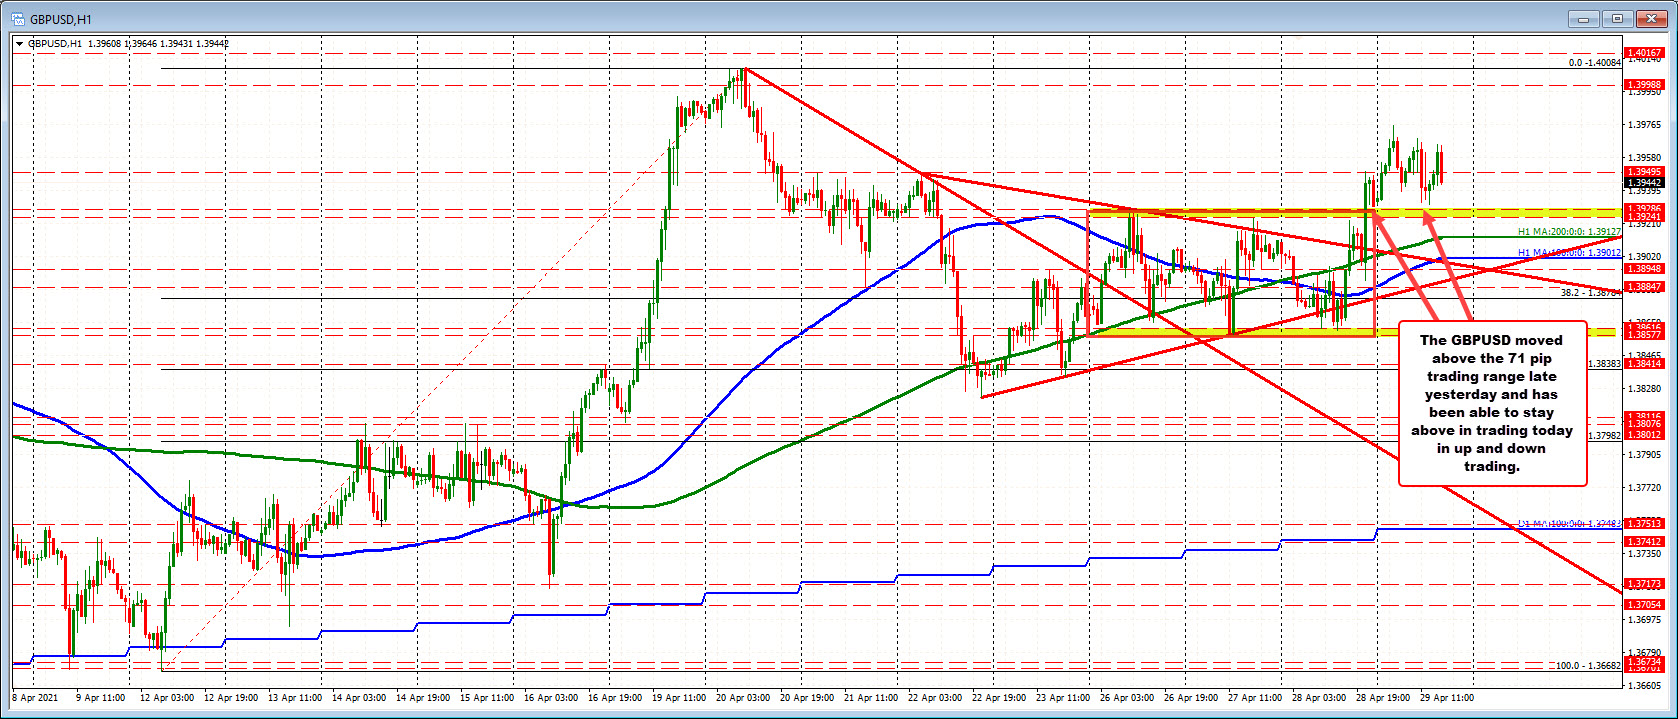 The GBPUSD broke outside a 71 pips range for the week yesterday. Stay above keeps the buyers in control